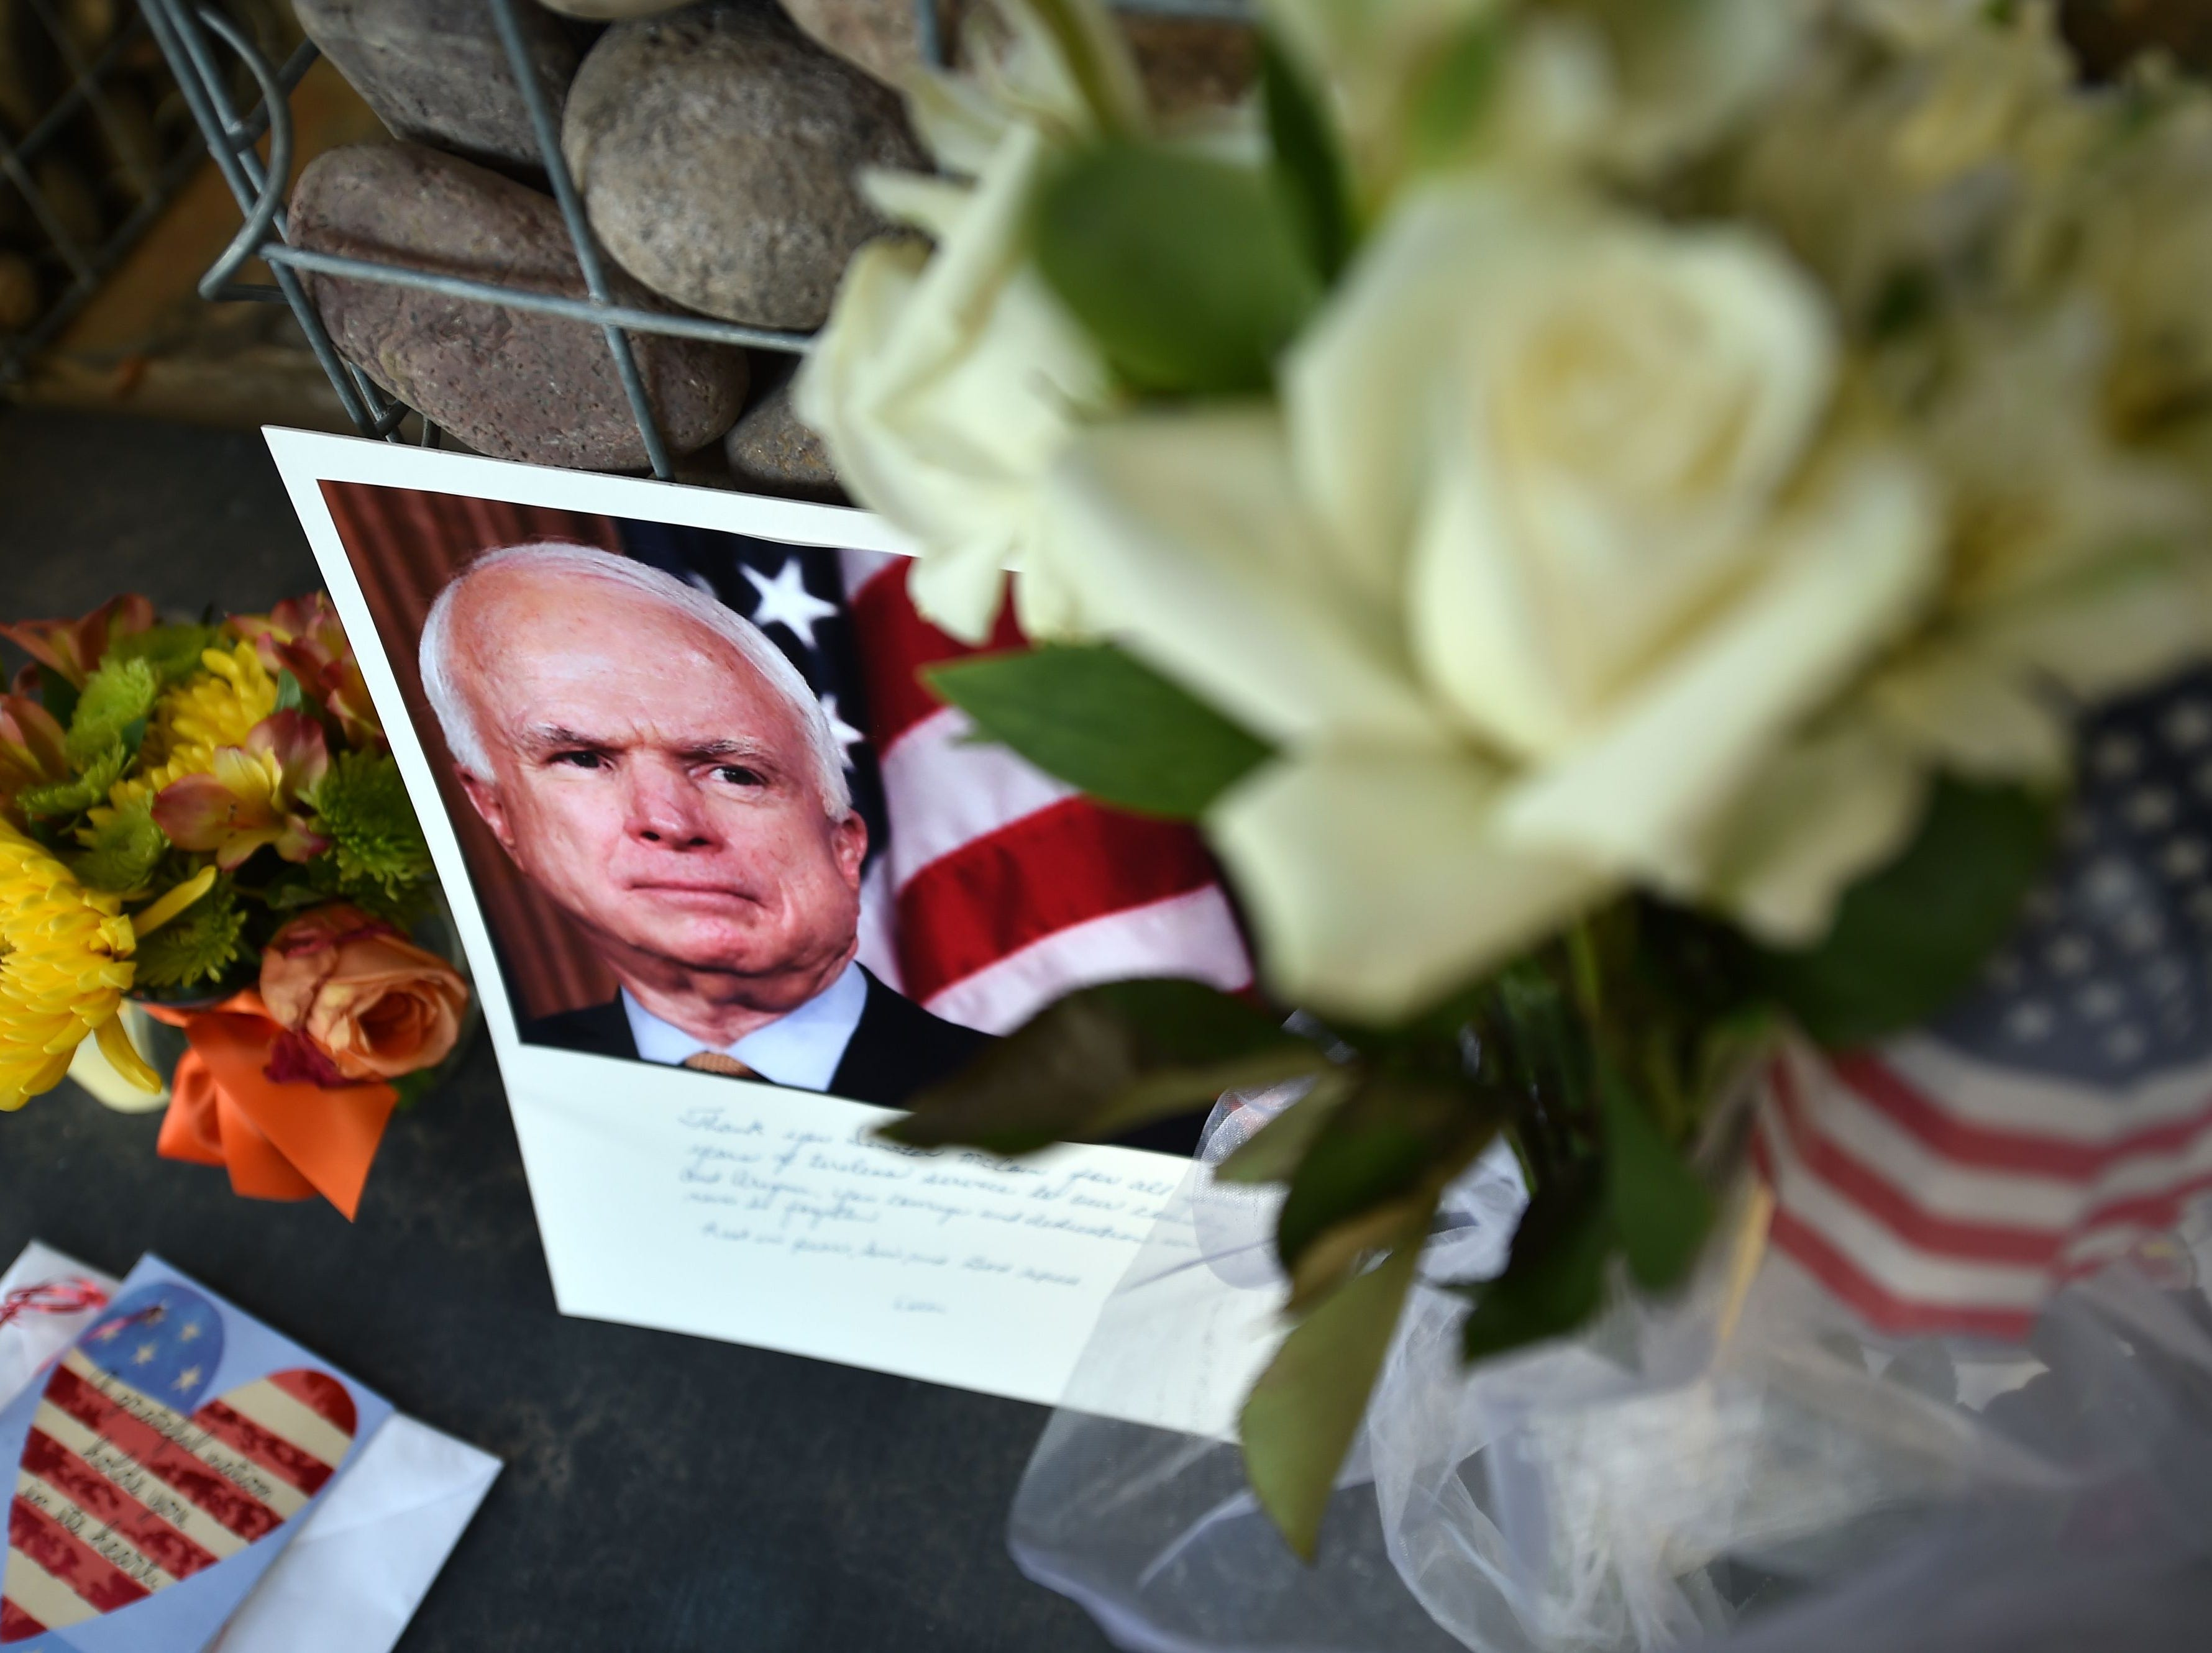 Photographs, flowers and notes gather at a makeshift memorial to US Senator John McCain outside his office in Phoenix, Ariz. on Aug. 26, 2018.